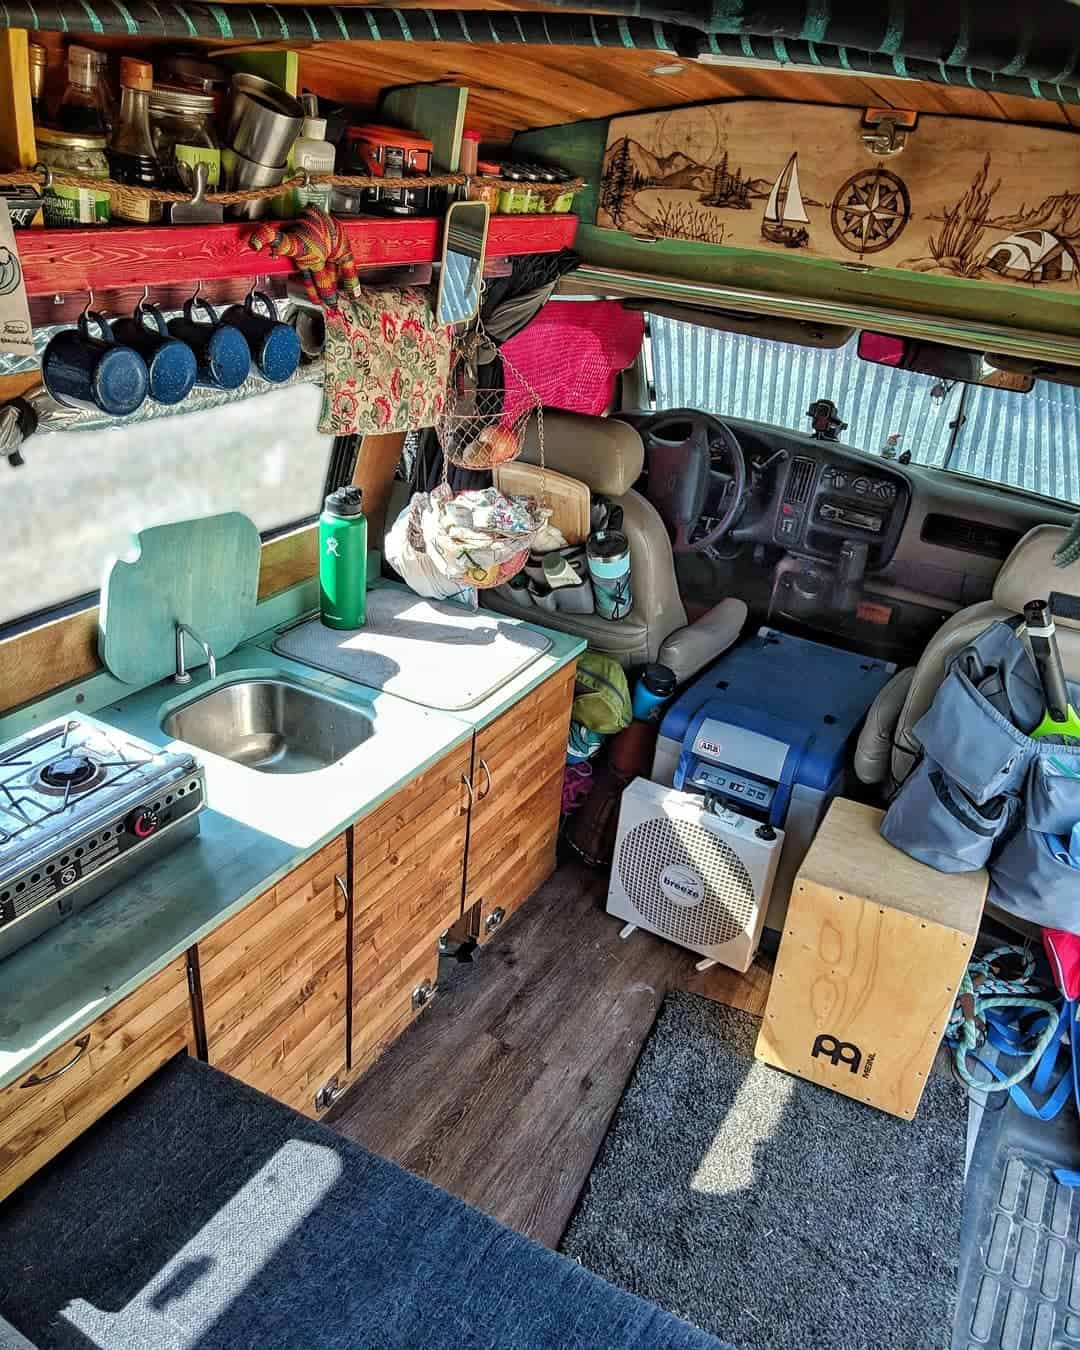 The interior of Gnomad Home's conversion van for van life